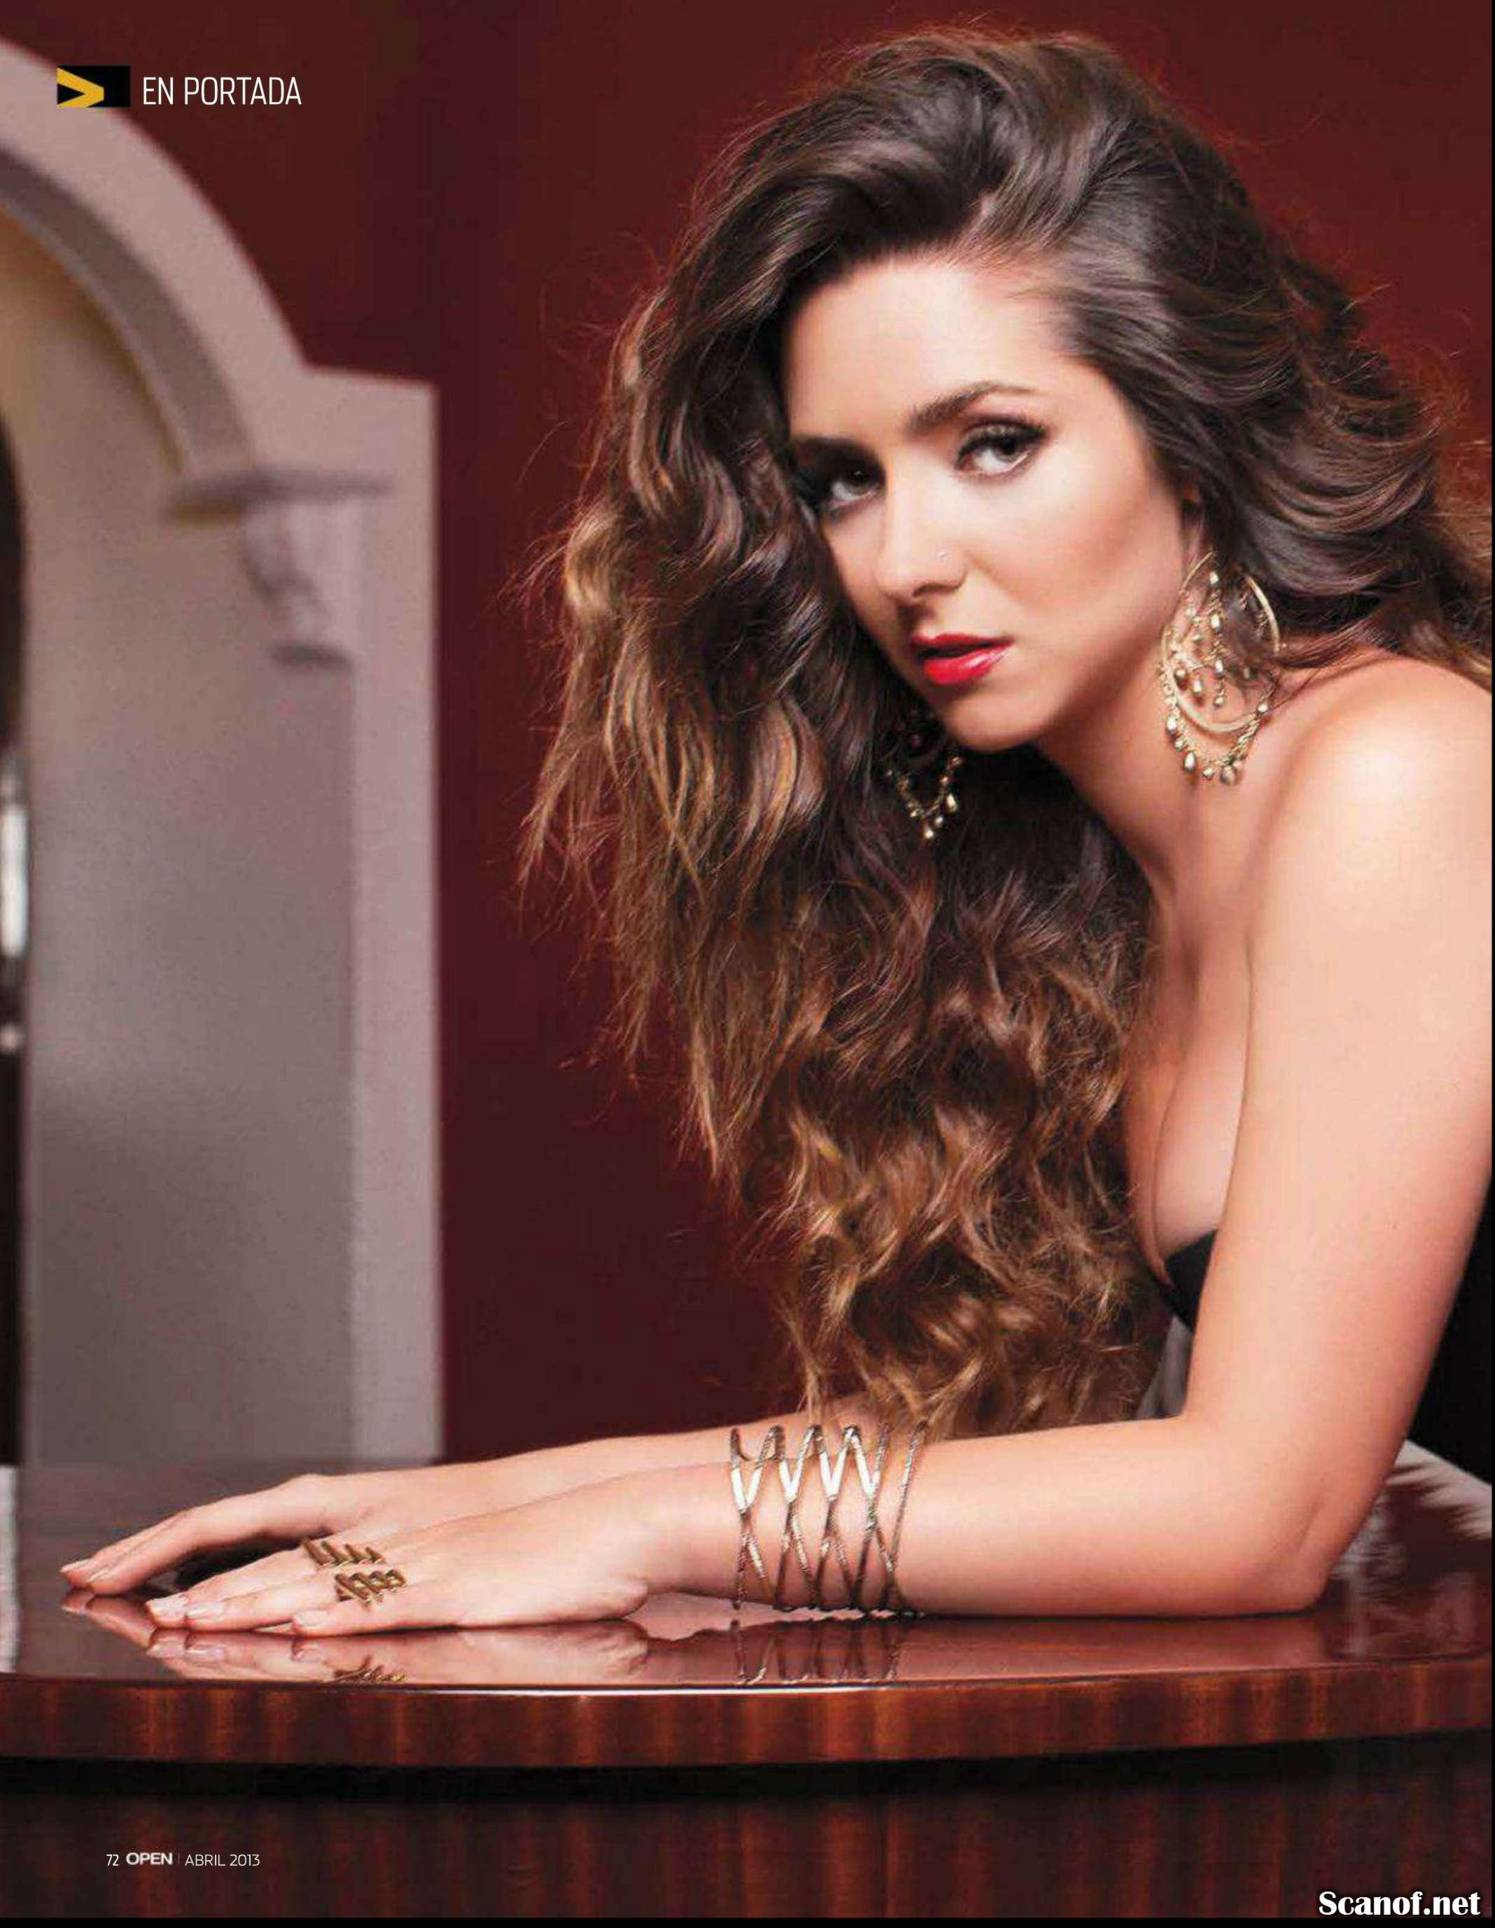 http://www.gotceleb.com/wp-content/uploads/celebrities/ariadne-diaz/open-mx-magazine-april-2013/Ariadne-Diaz---Open-MX-Magazine--02.jpg